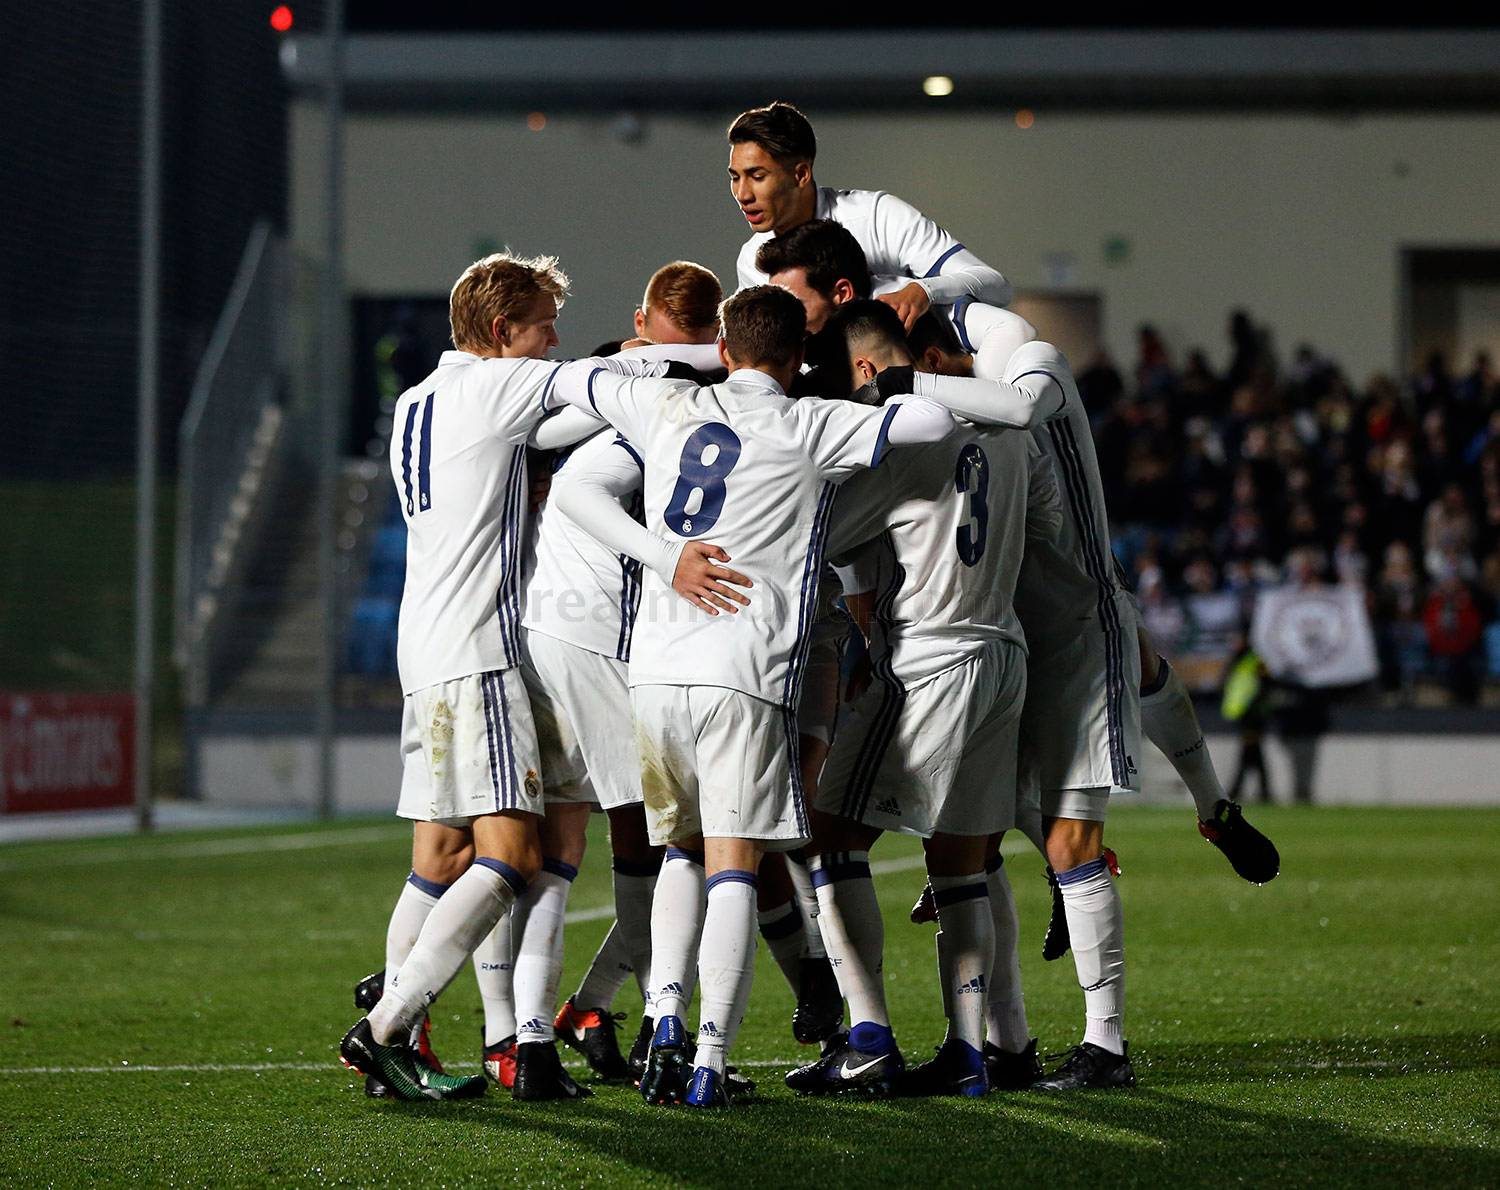 Real Madrid Castilla - Albacete